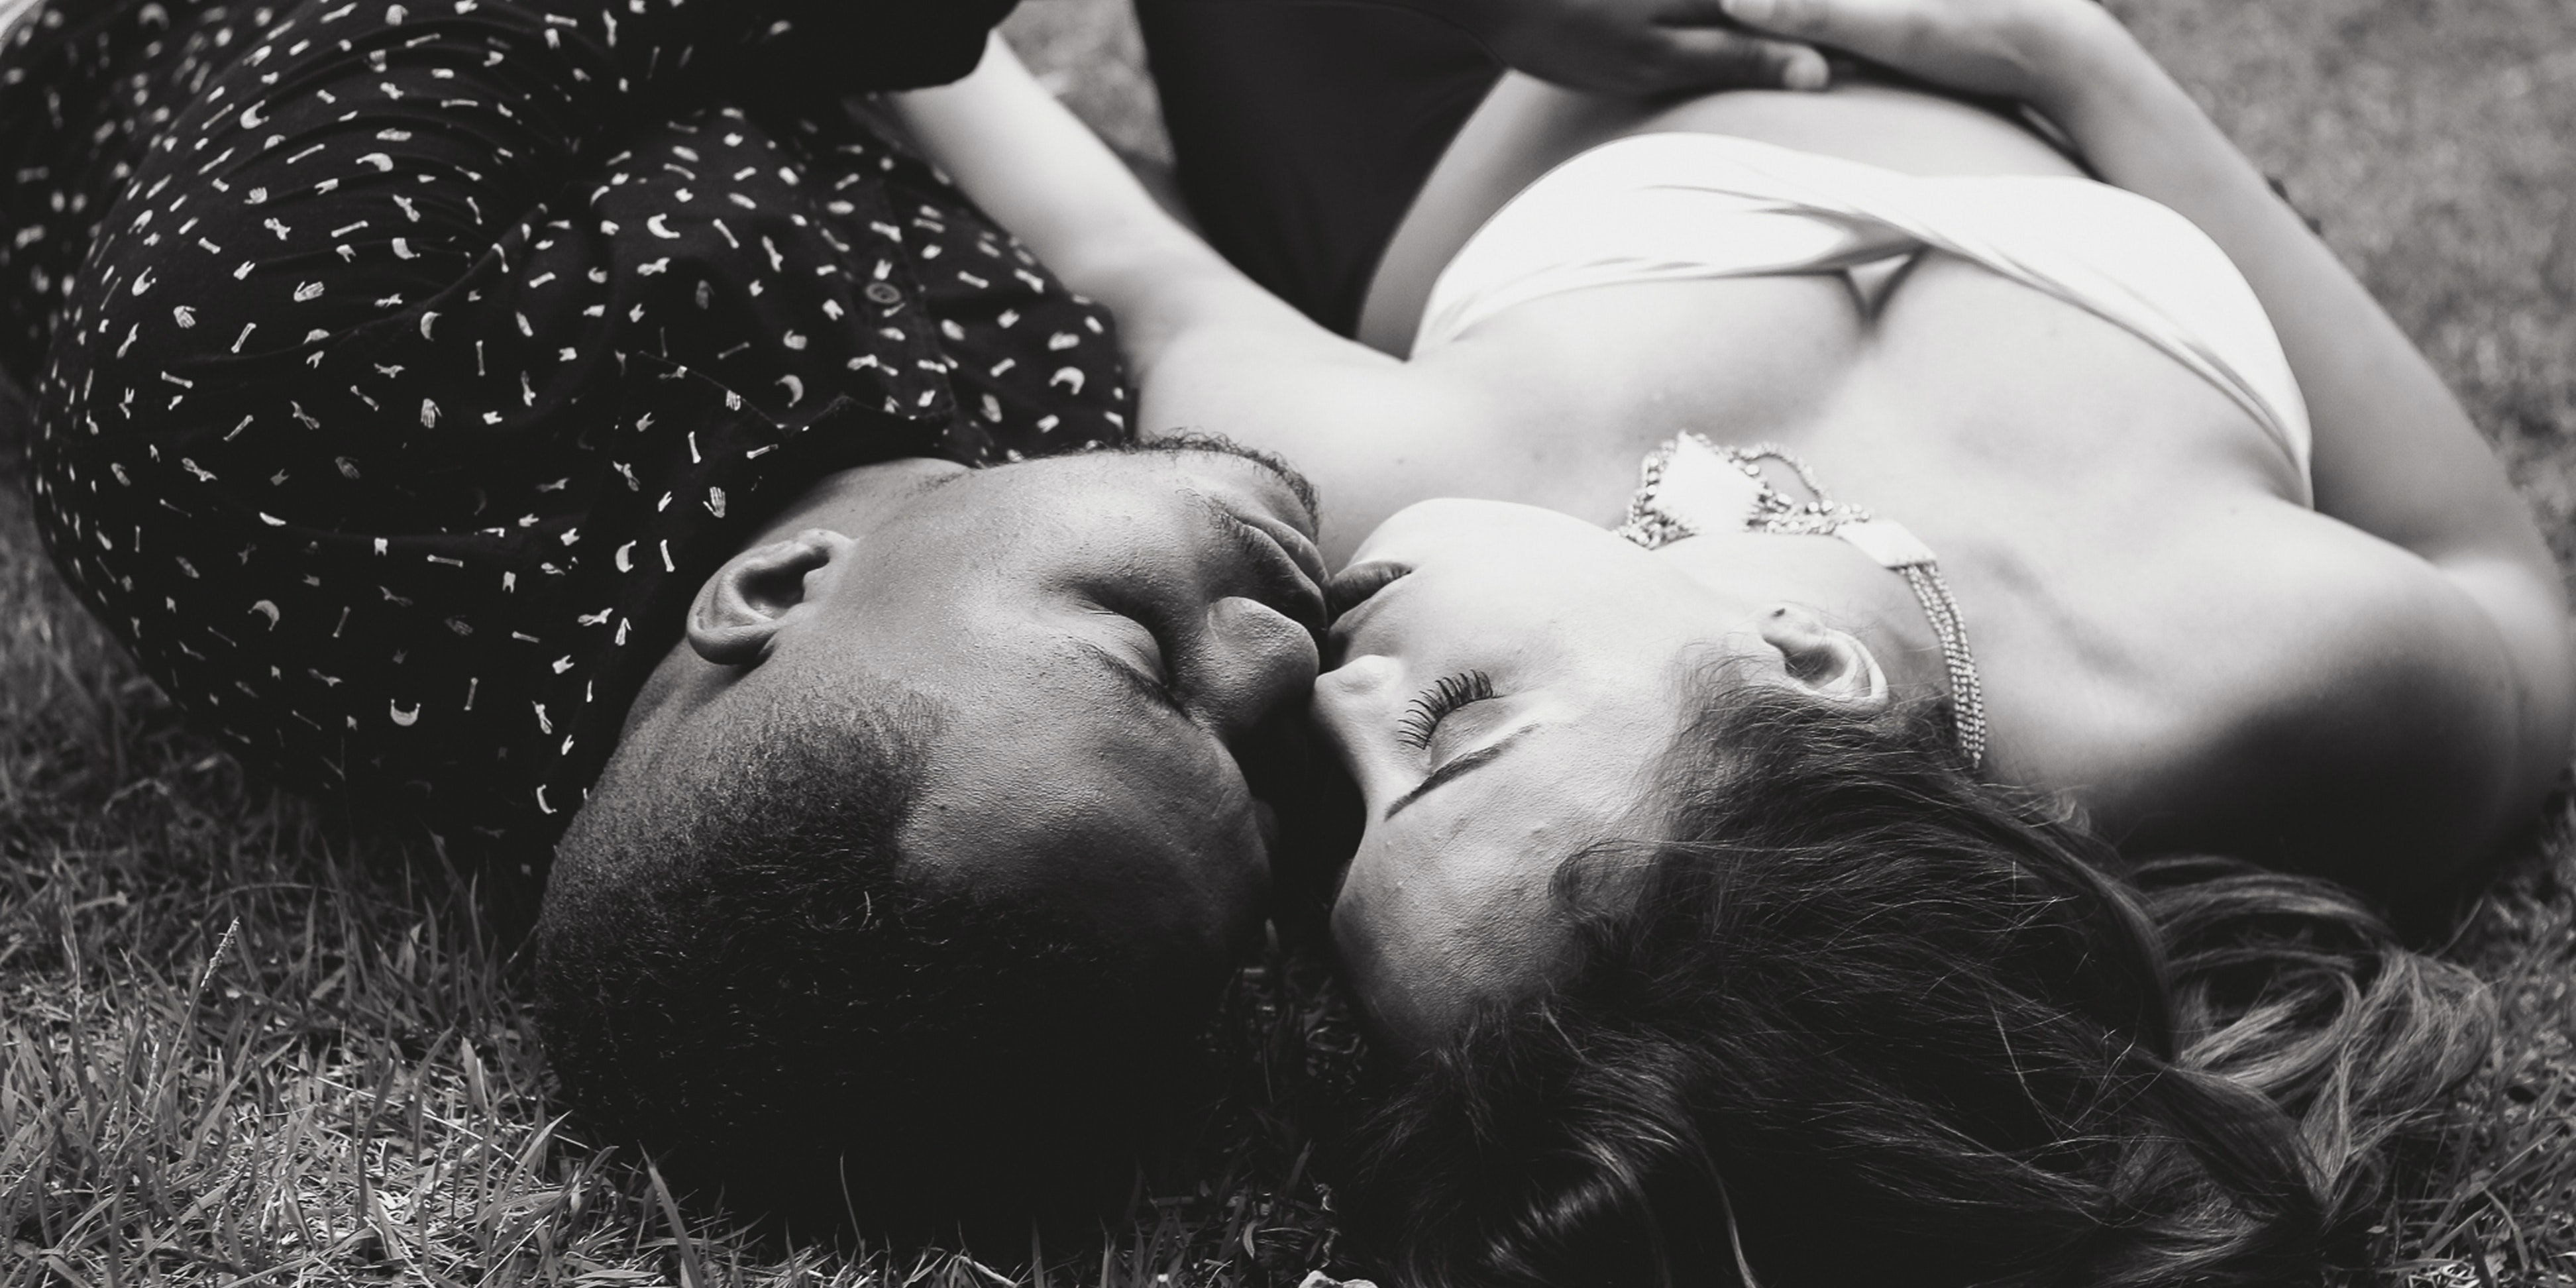 making out in a field